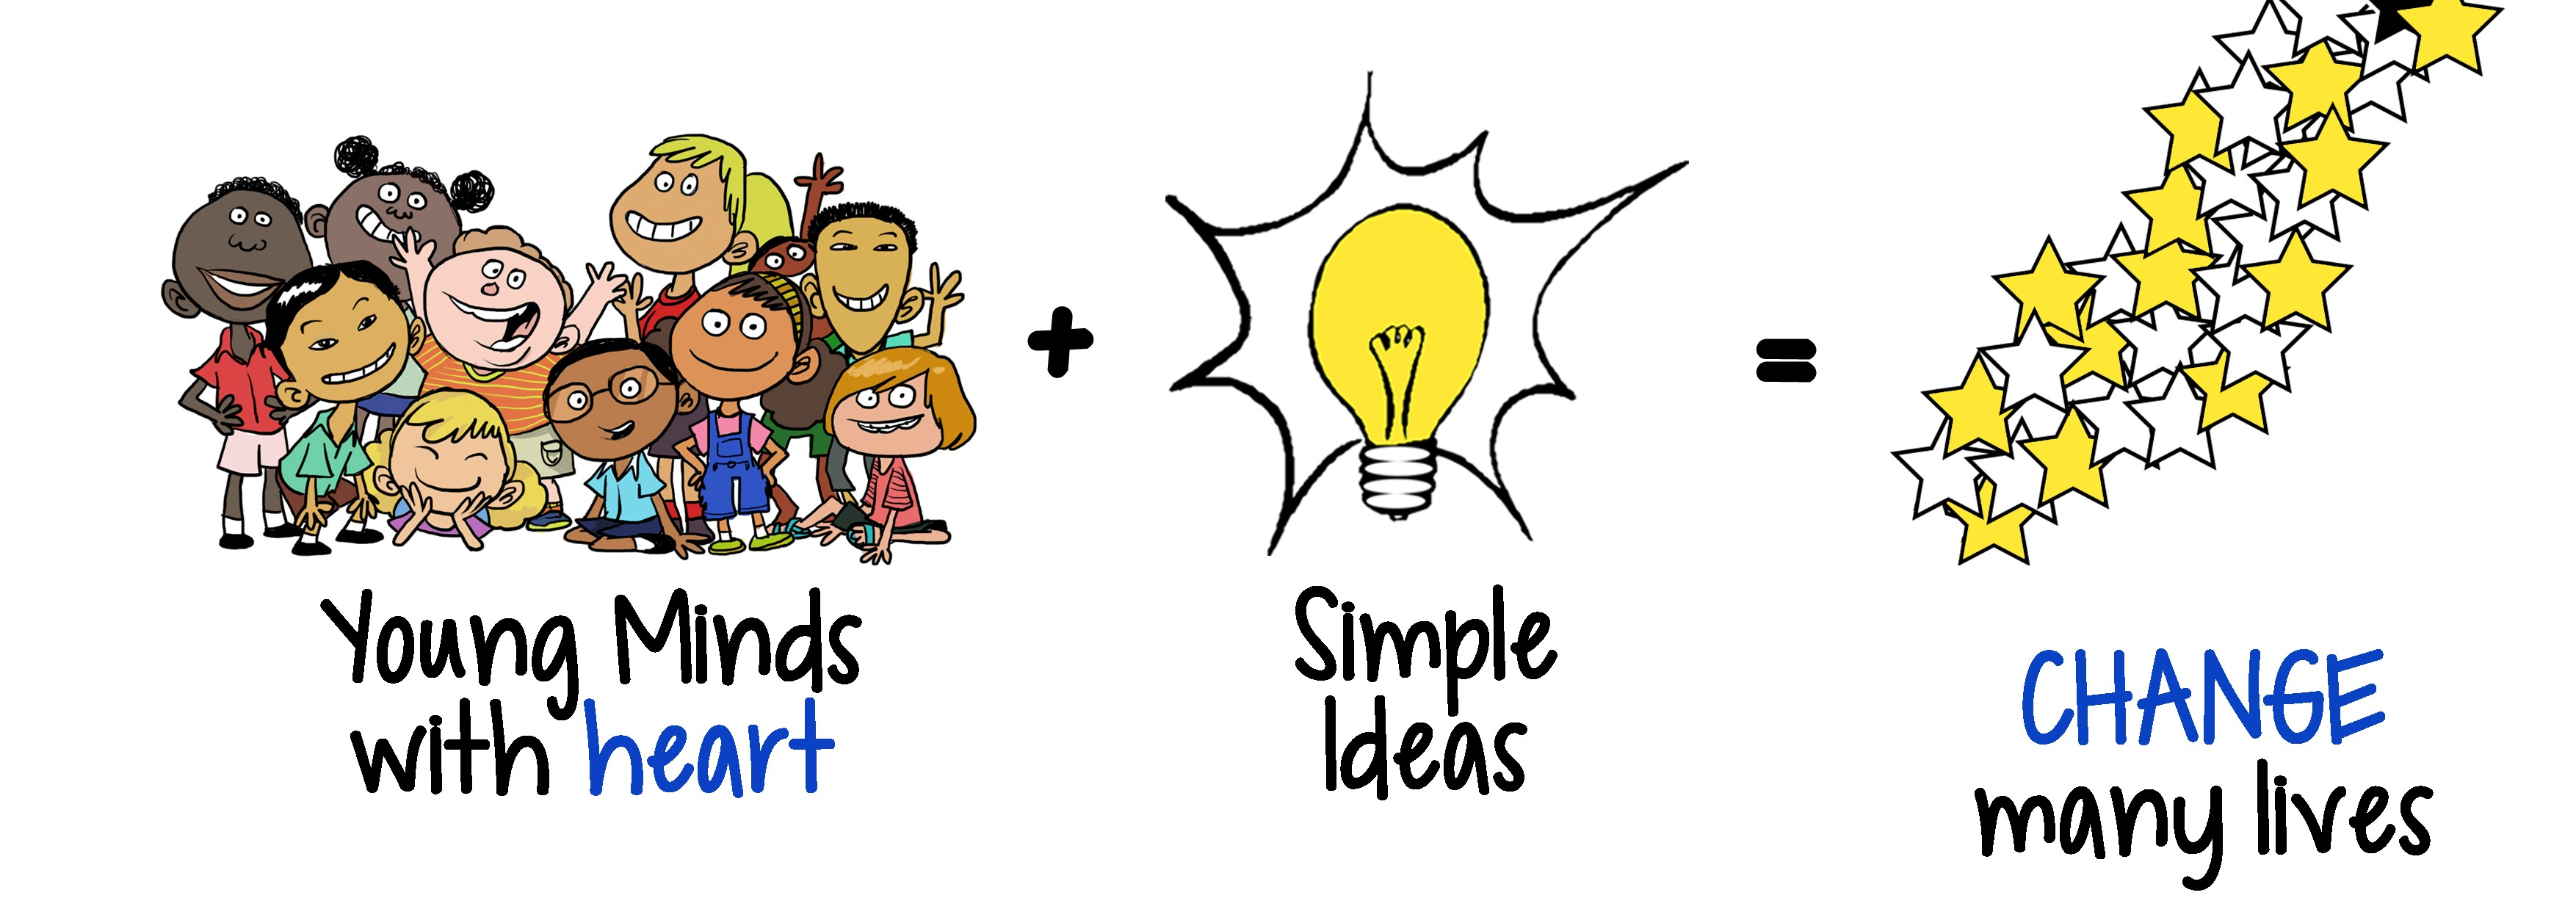 Young Mids simpleideas change lives